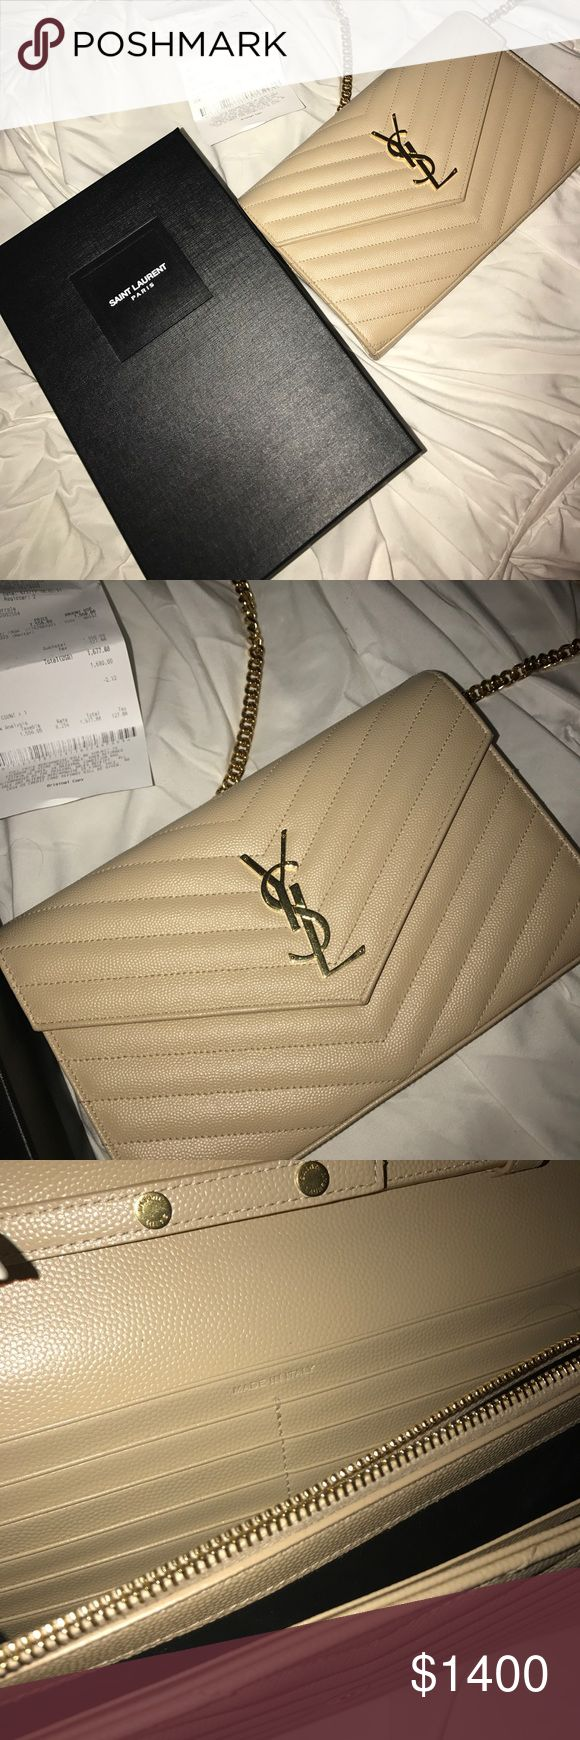 YSL clutch Nude in great condition! Saint Laurent Bags Crossbody Bags